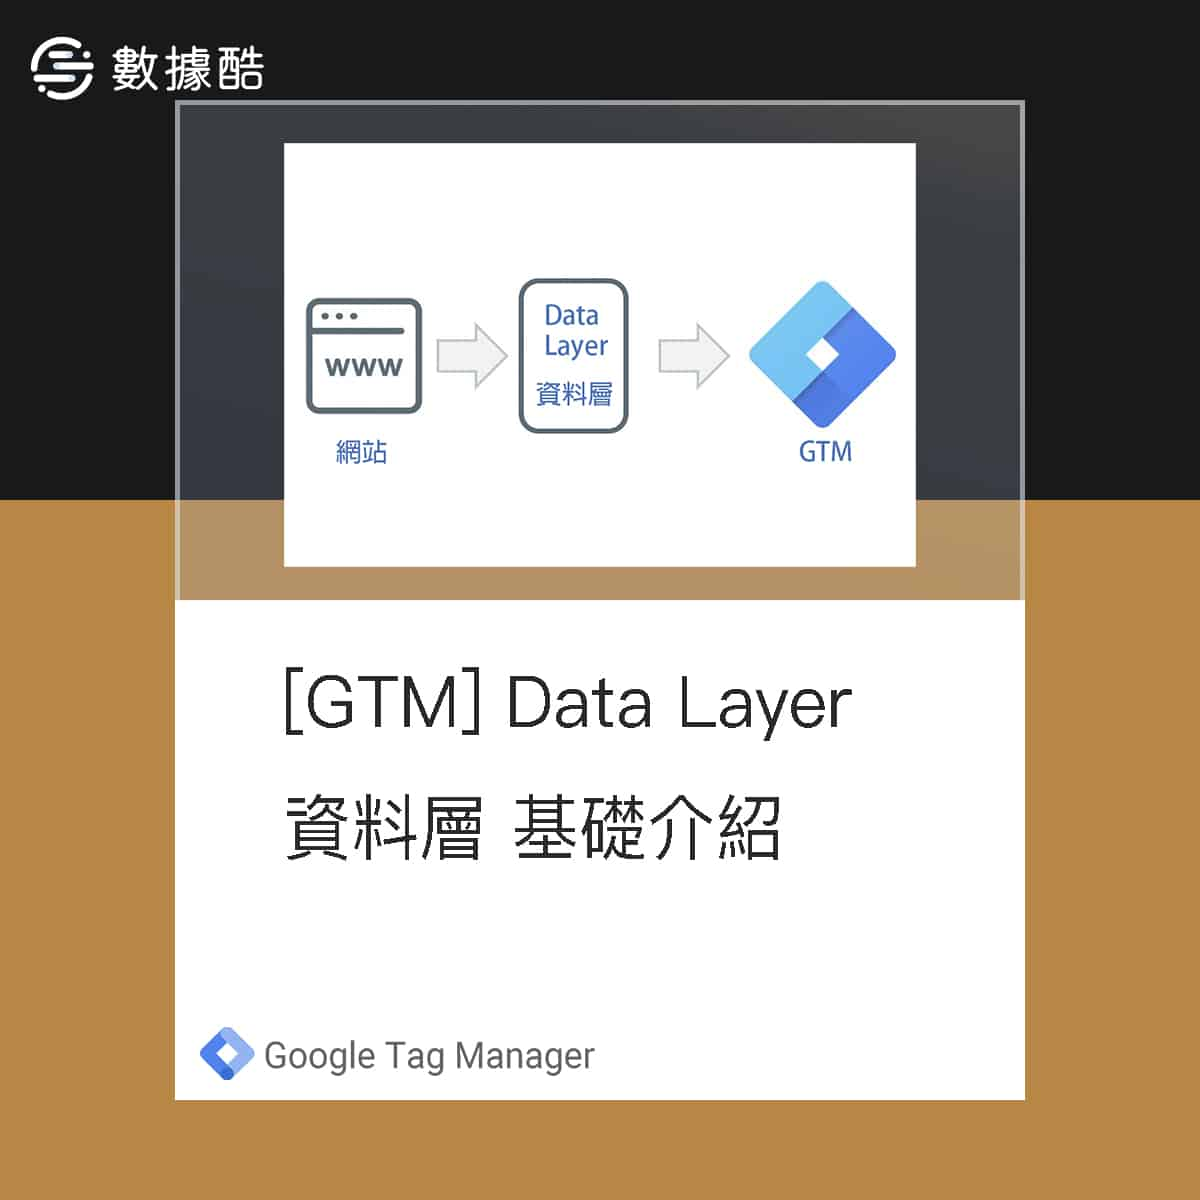 GTM 資料層( Data Layer )基礎介紹